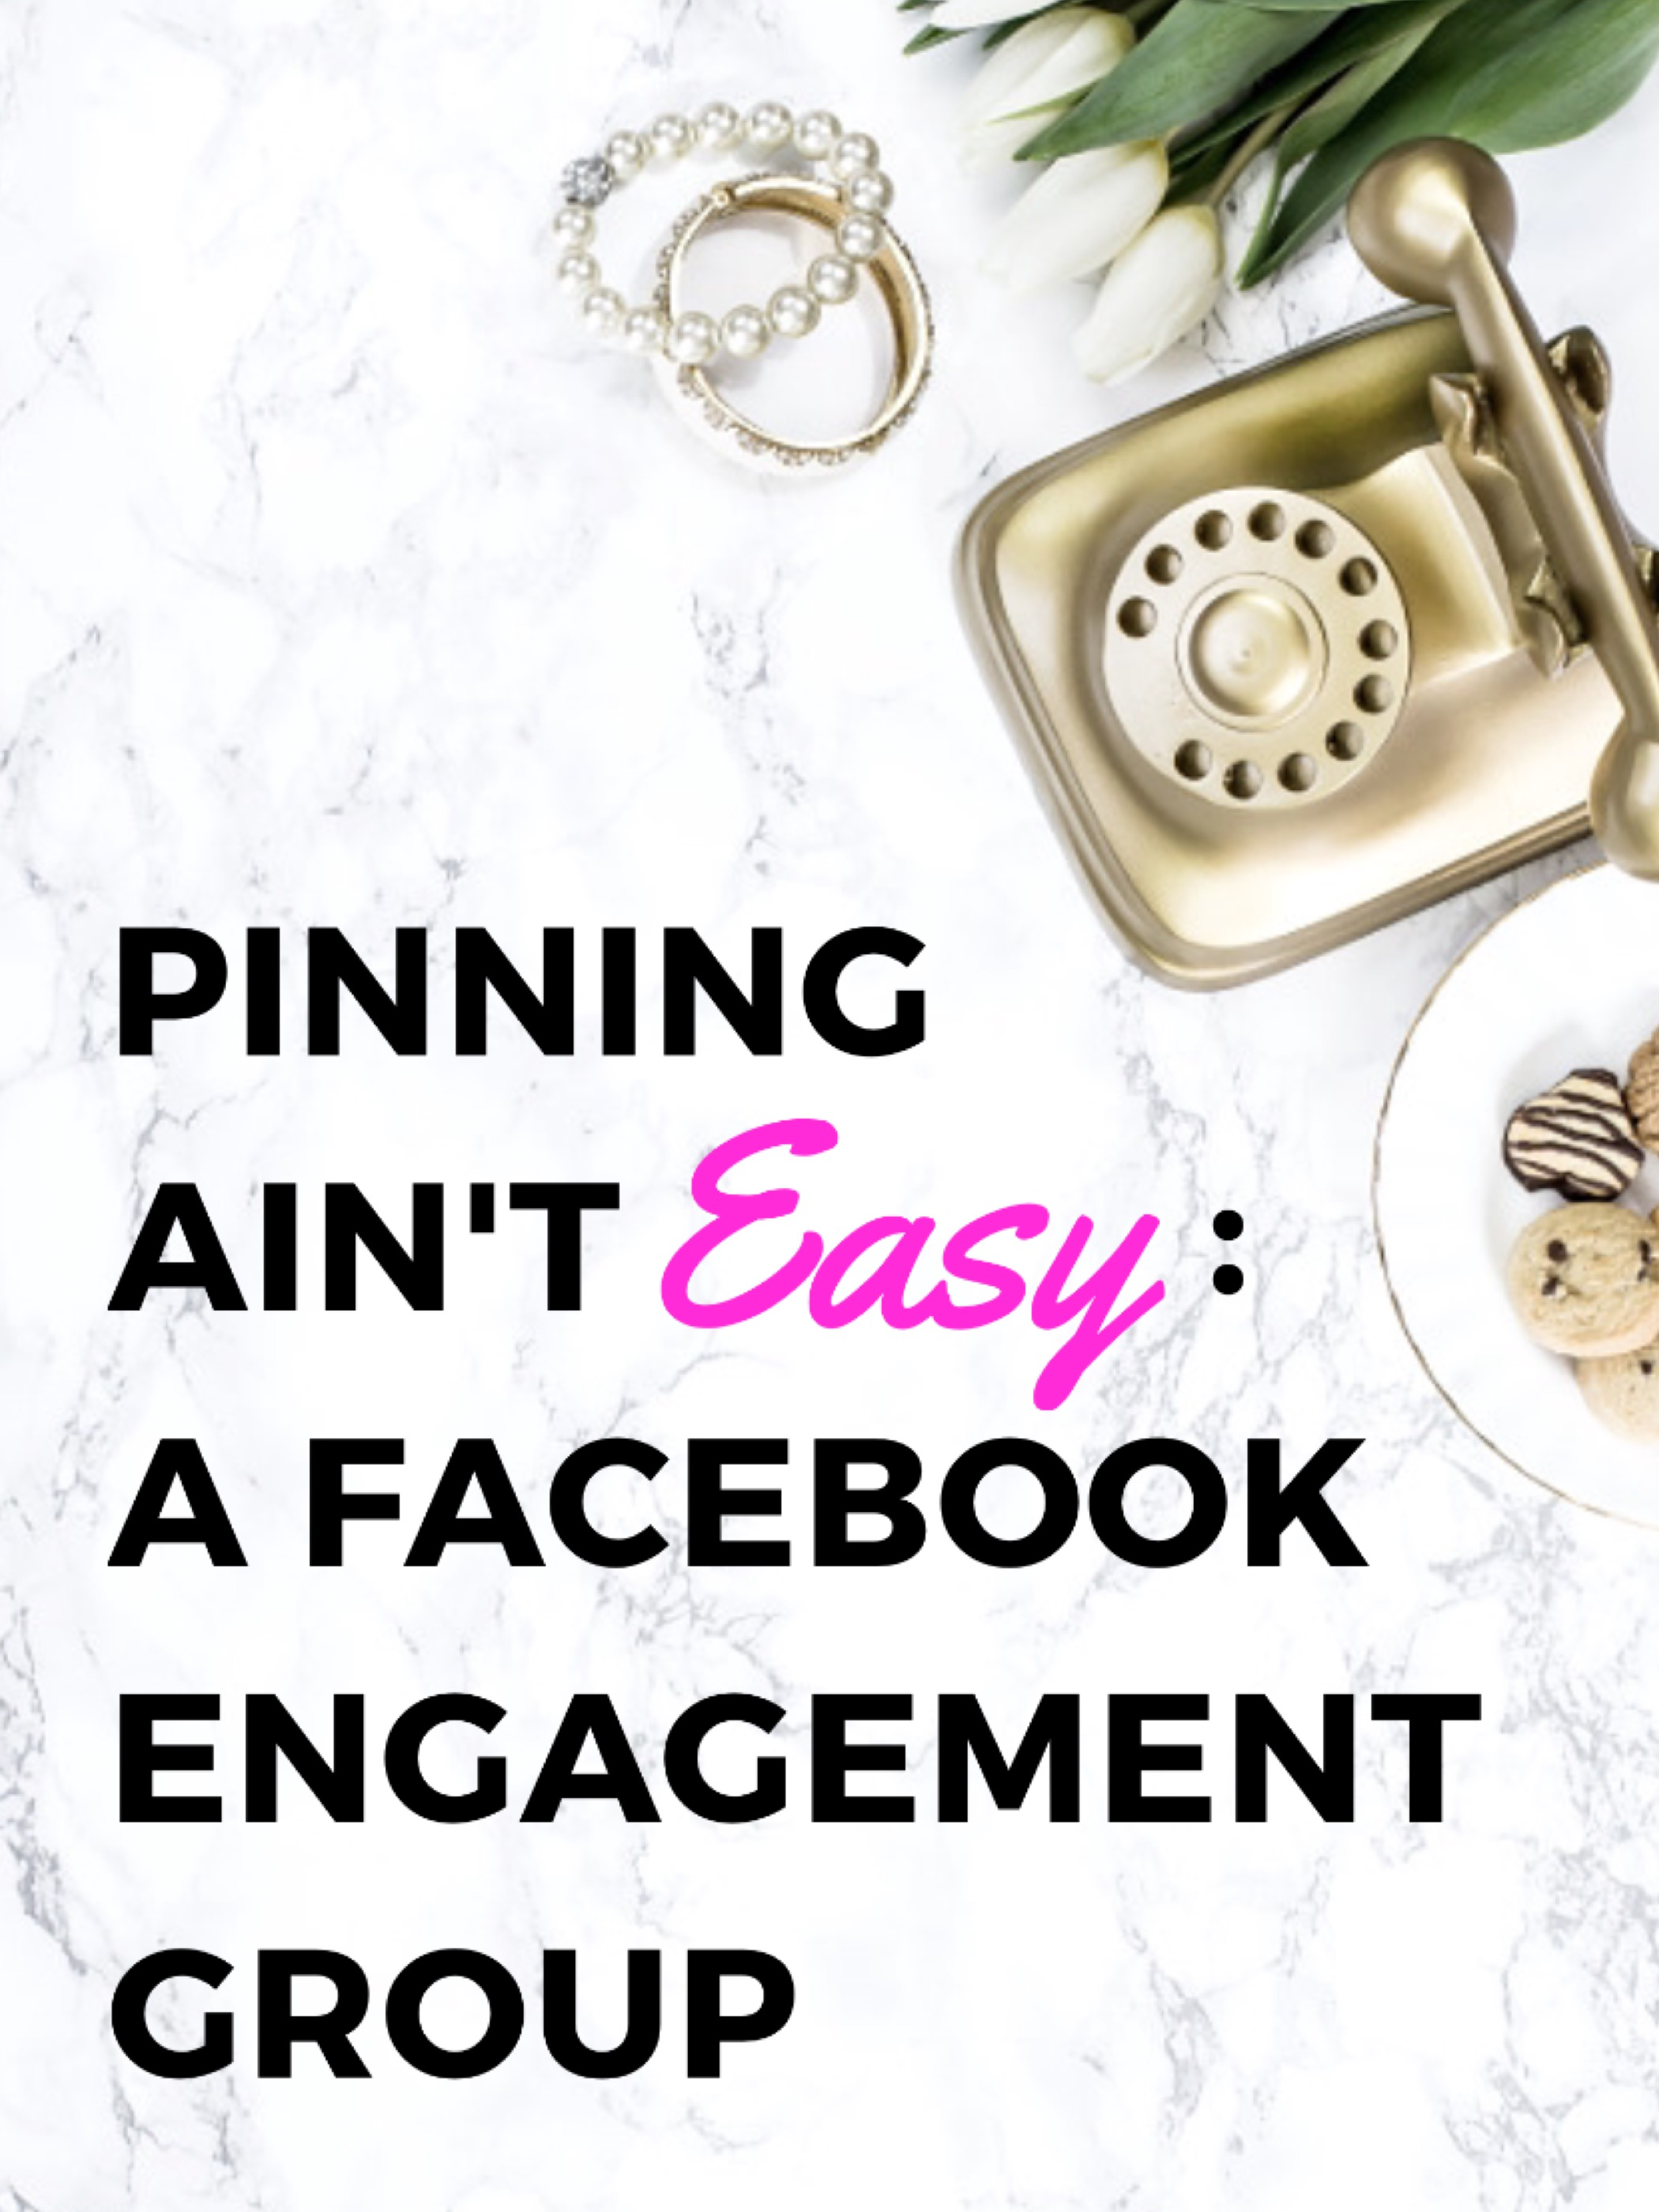 PINNING AIN'T EASY: A FACEBOOK ENGAGEMENT GROUP ⋆ Quirky Cents